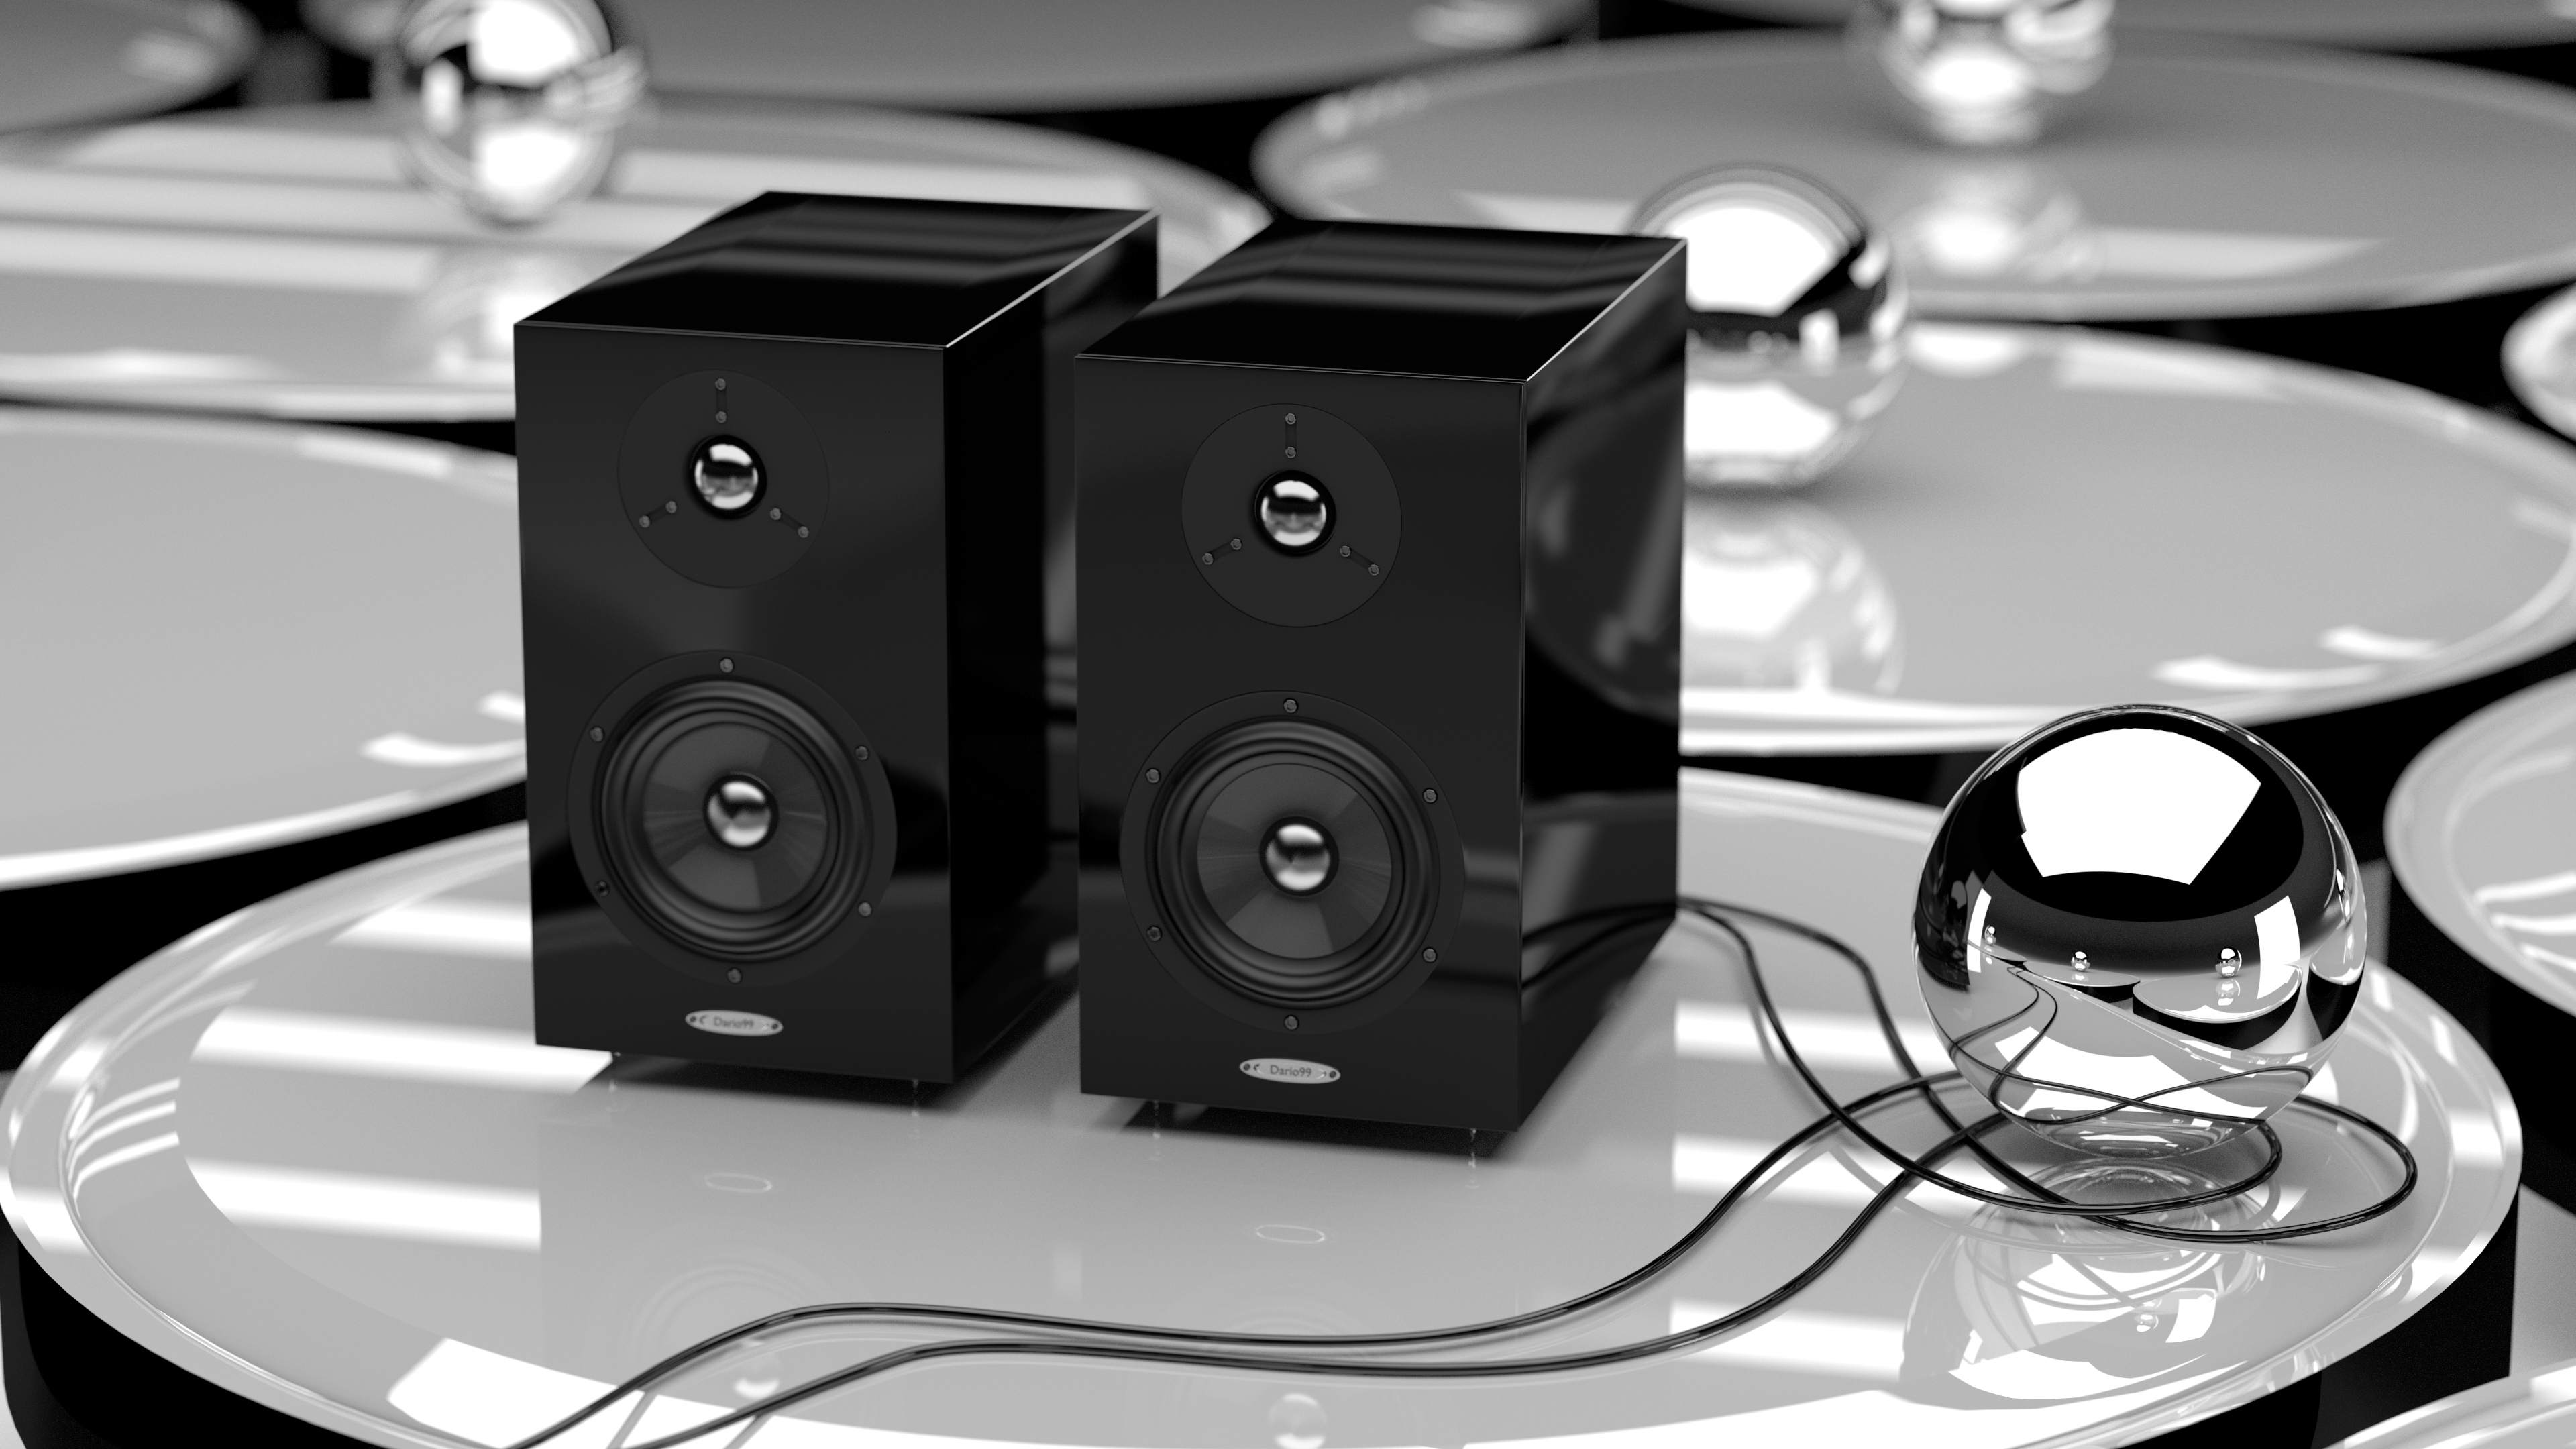 Speakers of Future (4k and Full HD) by Dario999